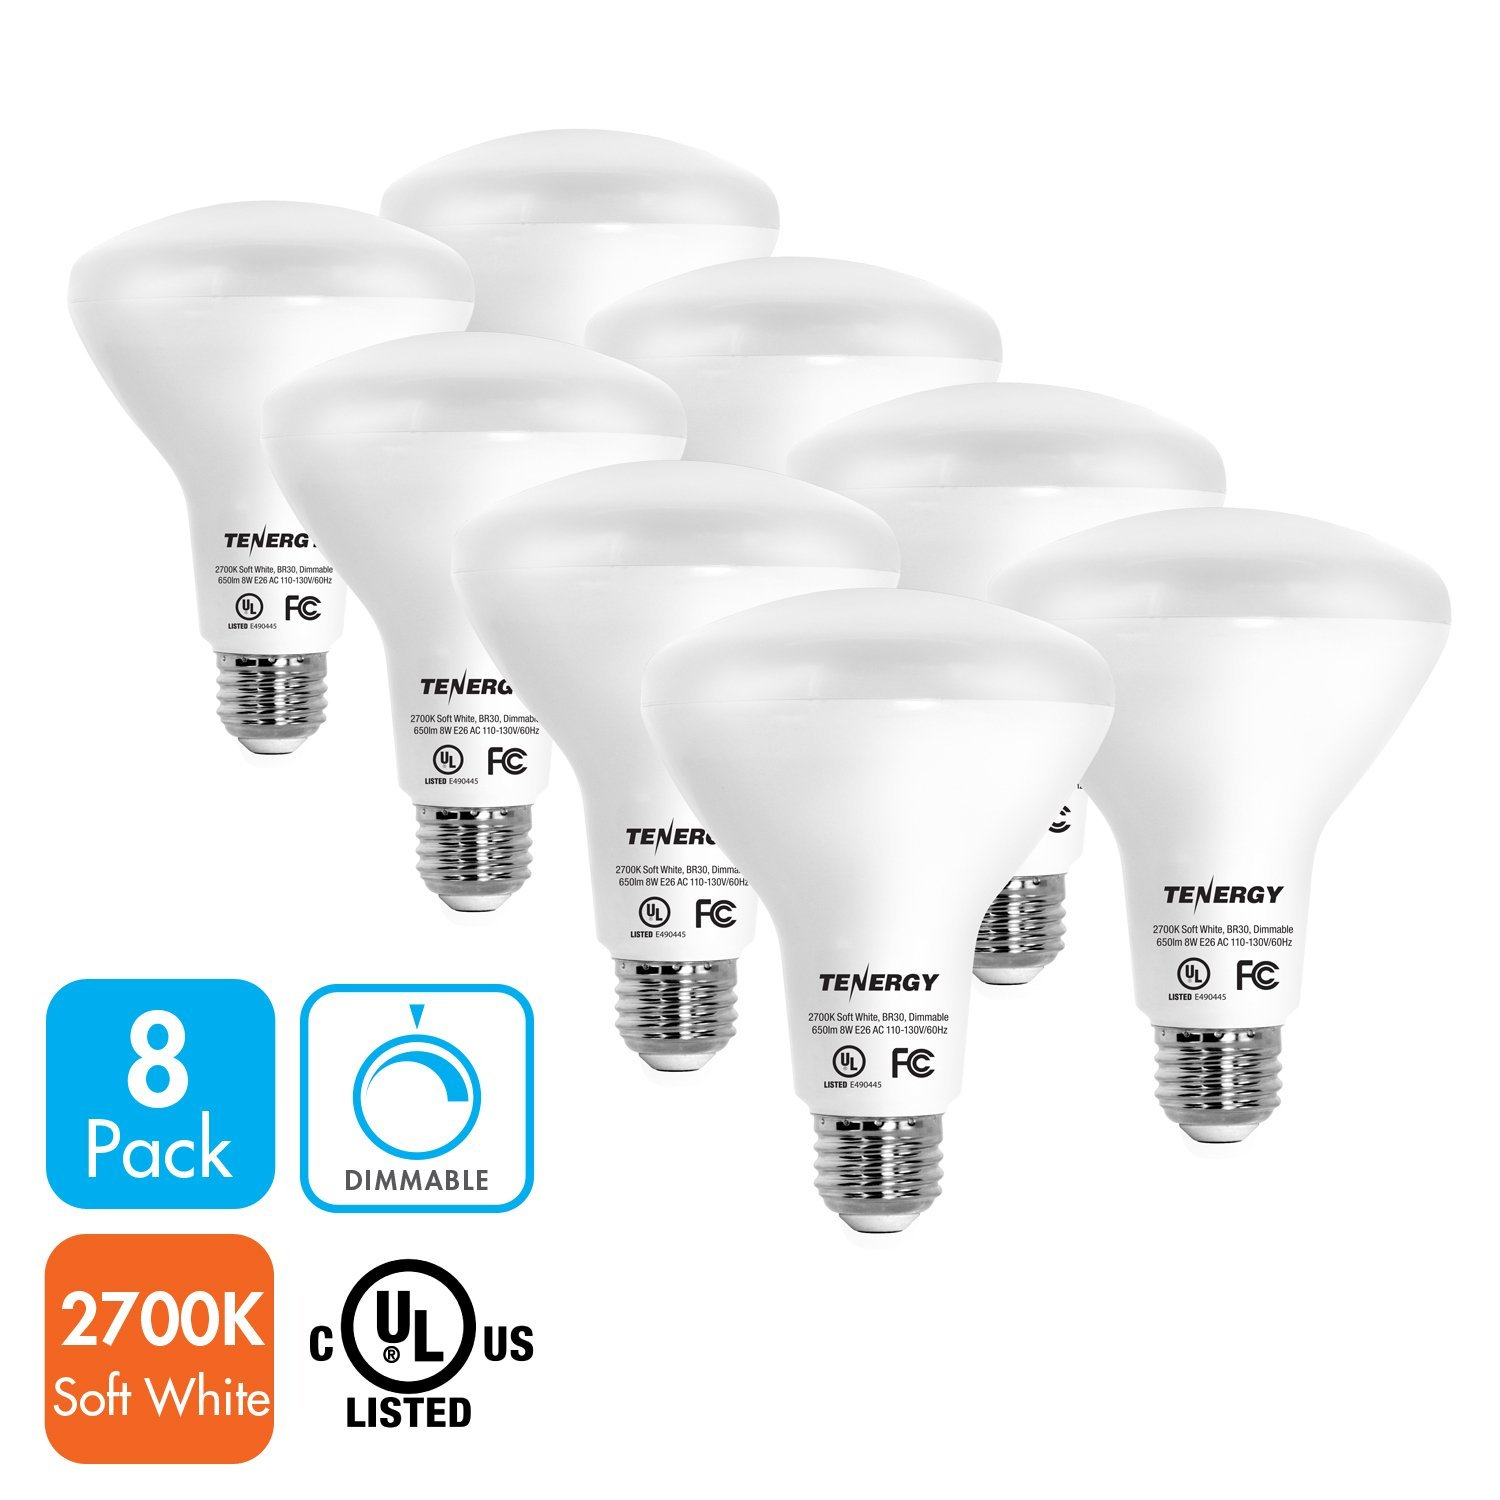 Tenergy tenergy dimmable led flood light bulbs 60 watt equivalent tenergy dimmable led flood light bulbs 60 watt equivalent 8w warm white soft mozeypictures